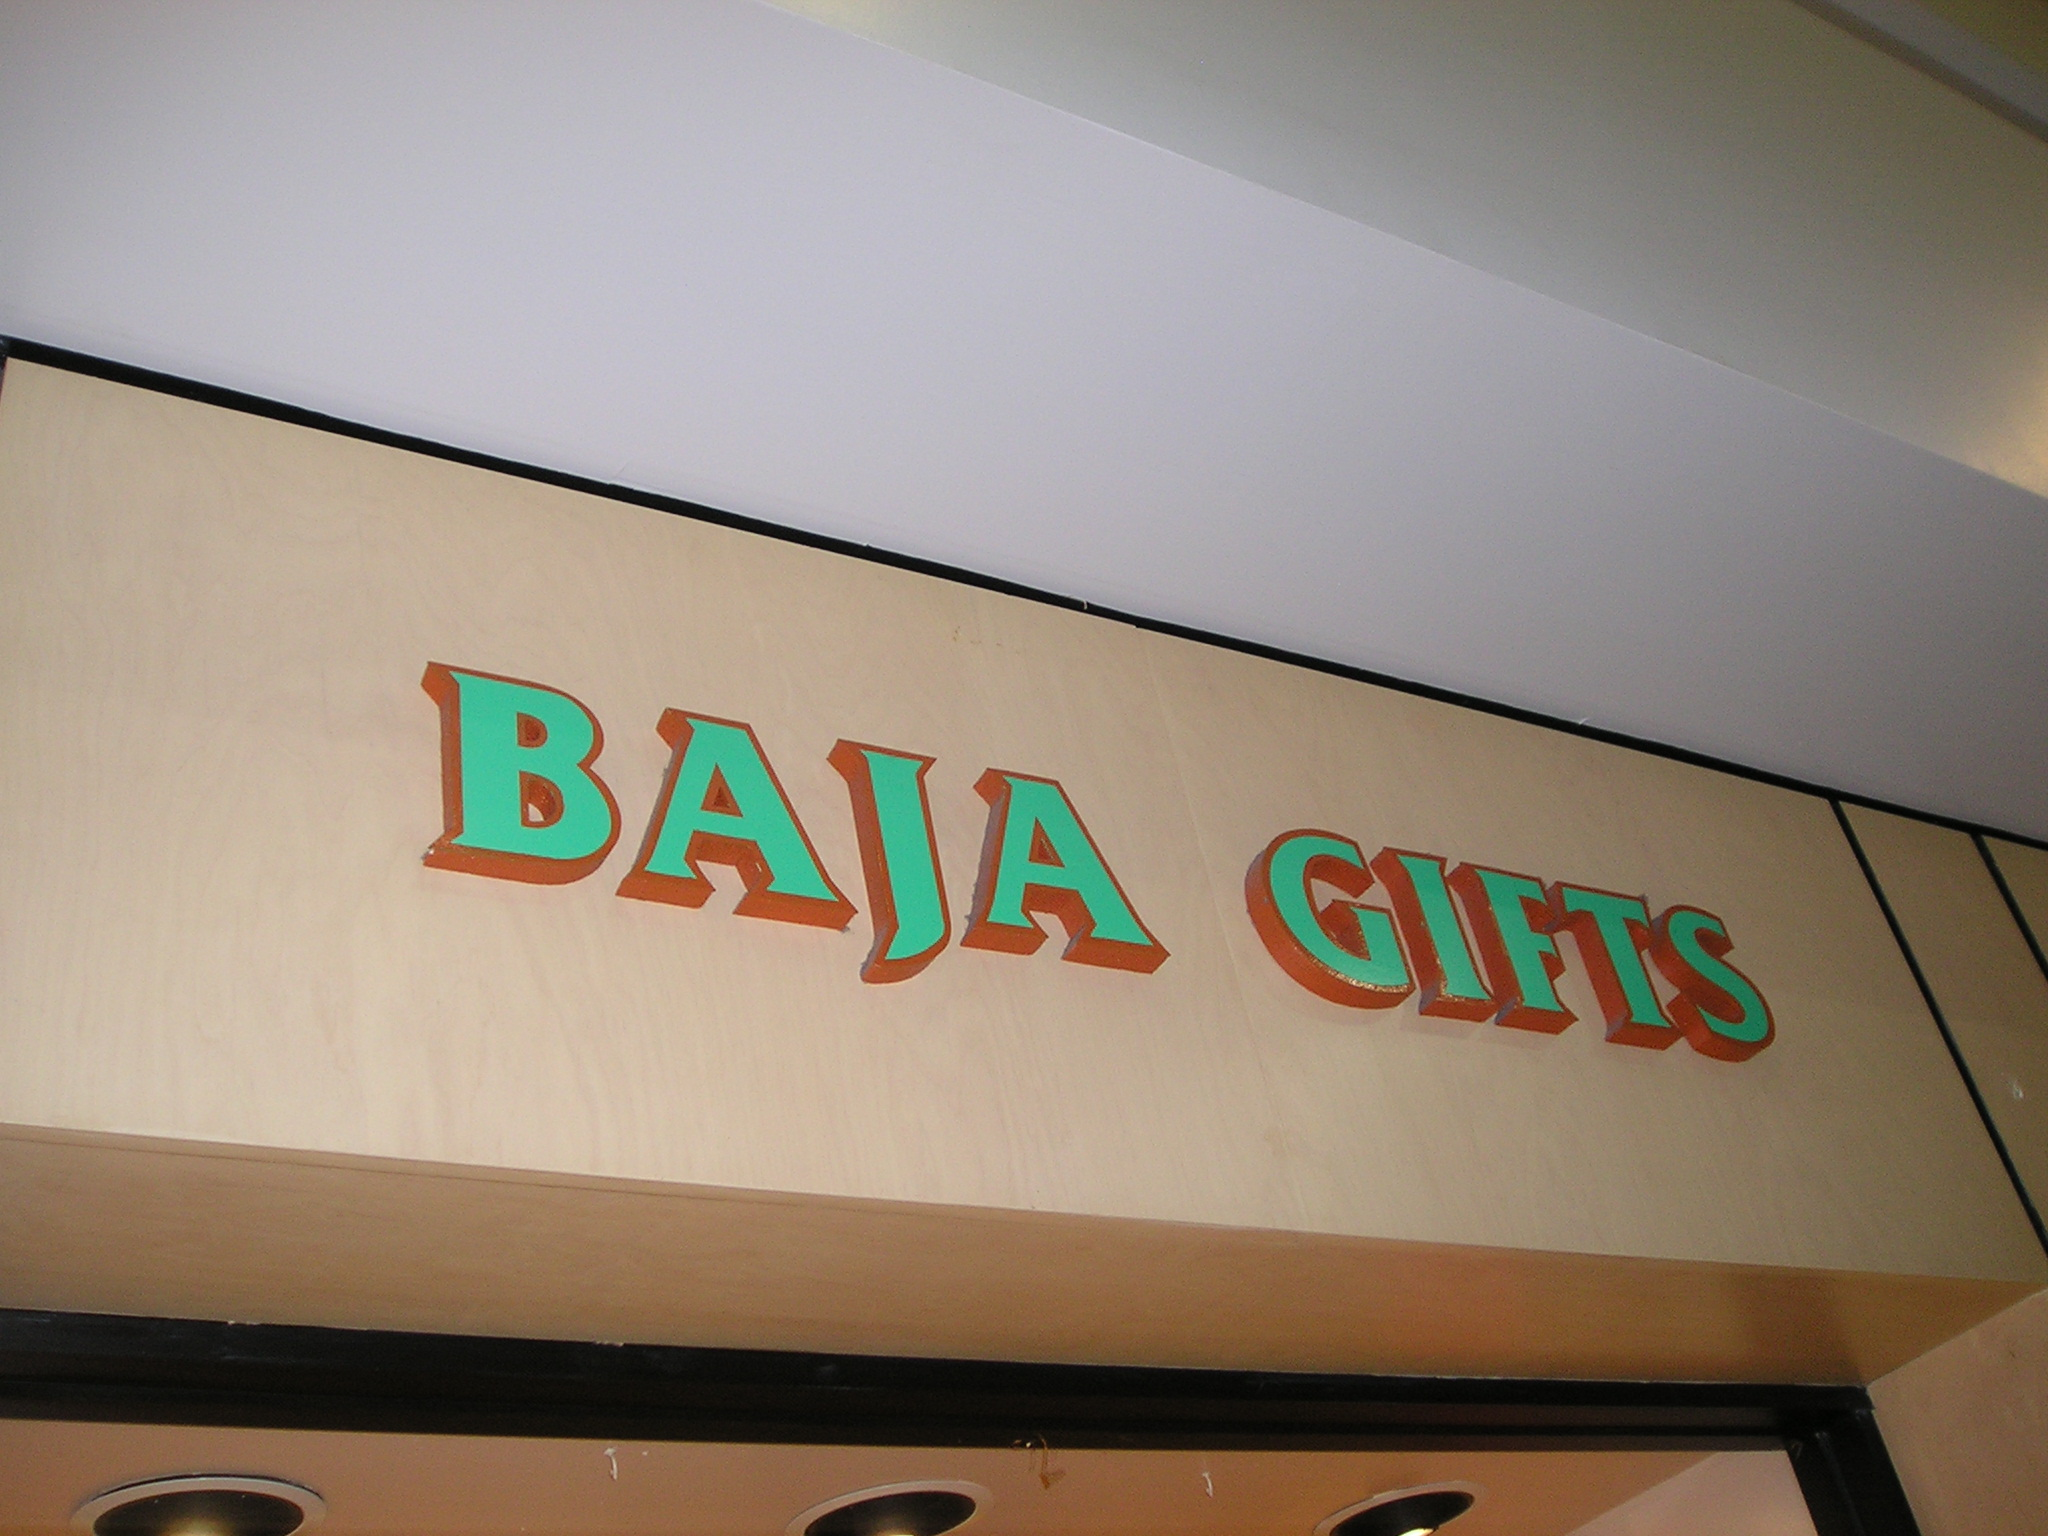 SA28343 - Shopping Mall Gift Shop Sign with Carved Raised Outline Letters